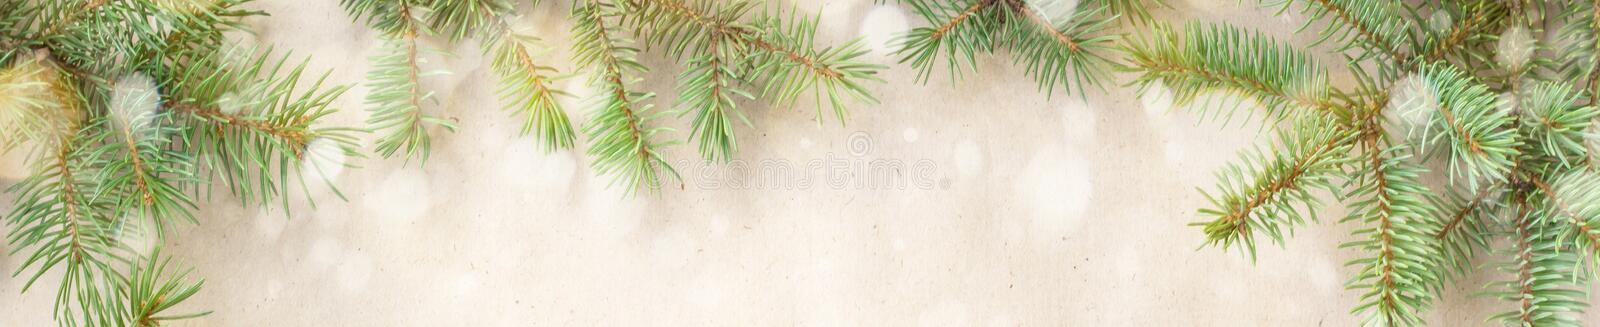 banner of Festive christmas border with fir branches and snowflakes with snow on rustic beige background royalty free stock images